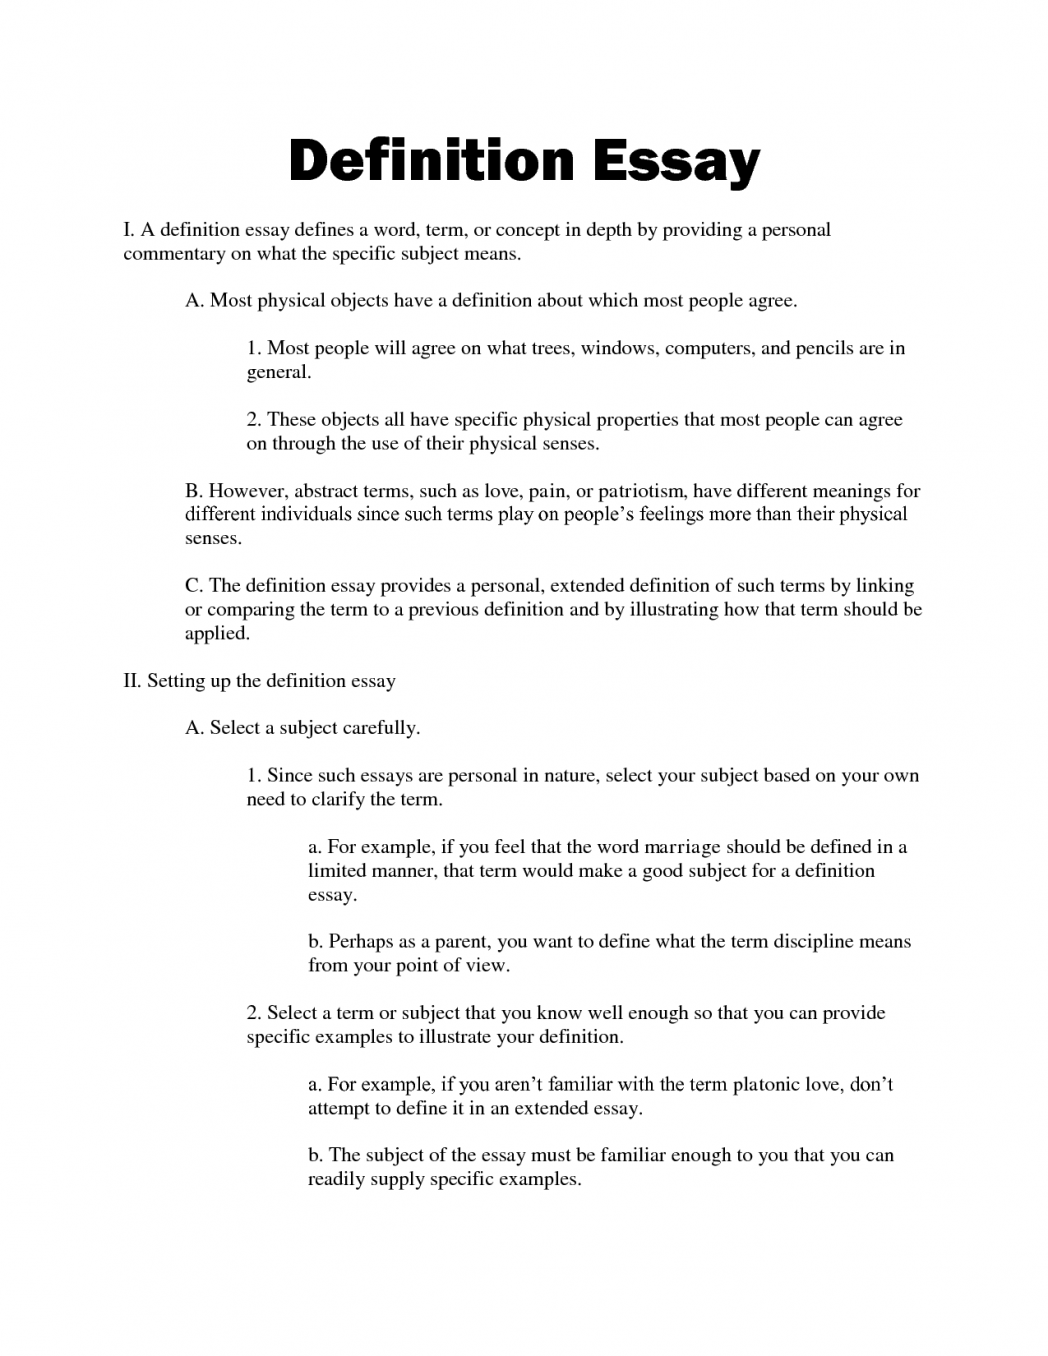 003 How To Write Definition Essays Goal Blockety Co Gj60o Courage Beauty Pdf Family Topics Friendship Happiness Success Love 1048x1356 Beautiful Essay List Extended Meaning Examples Full